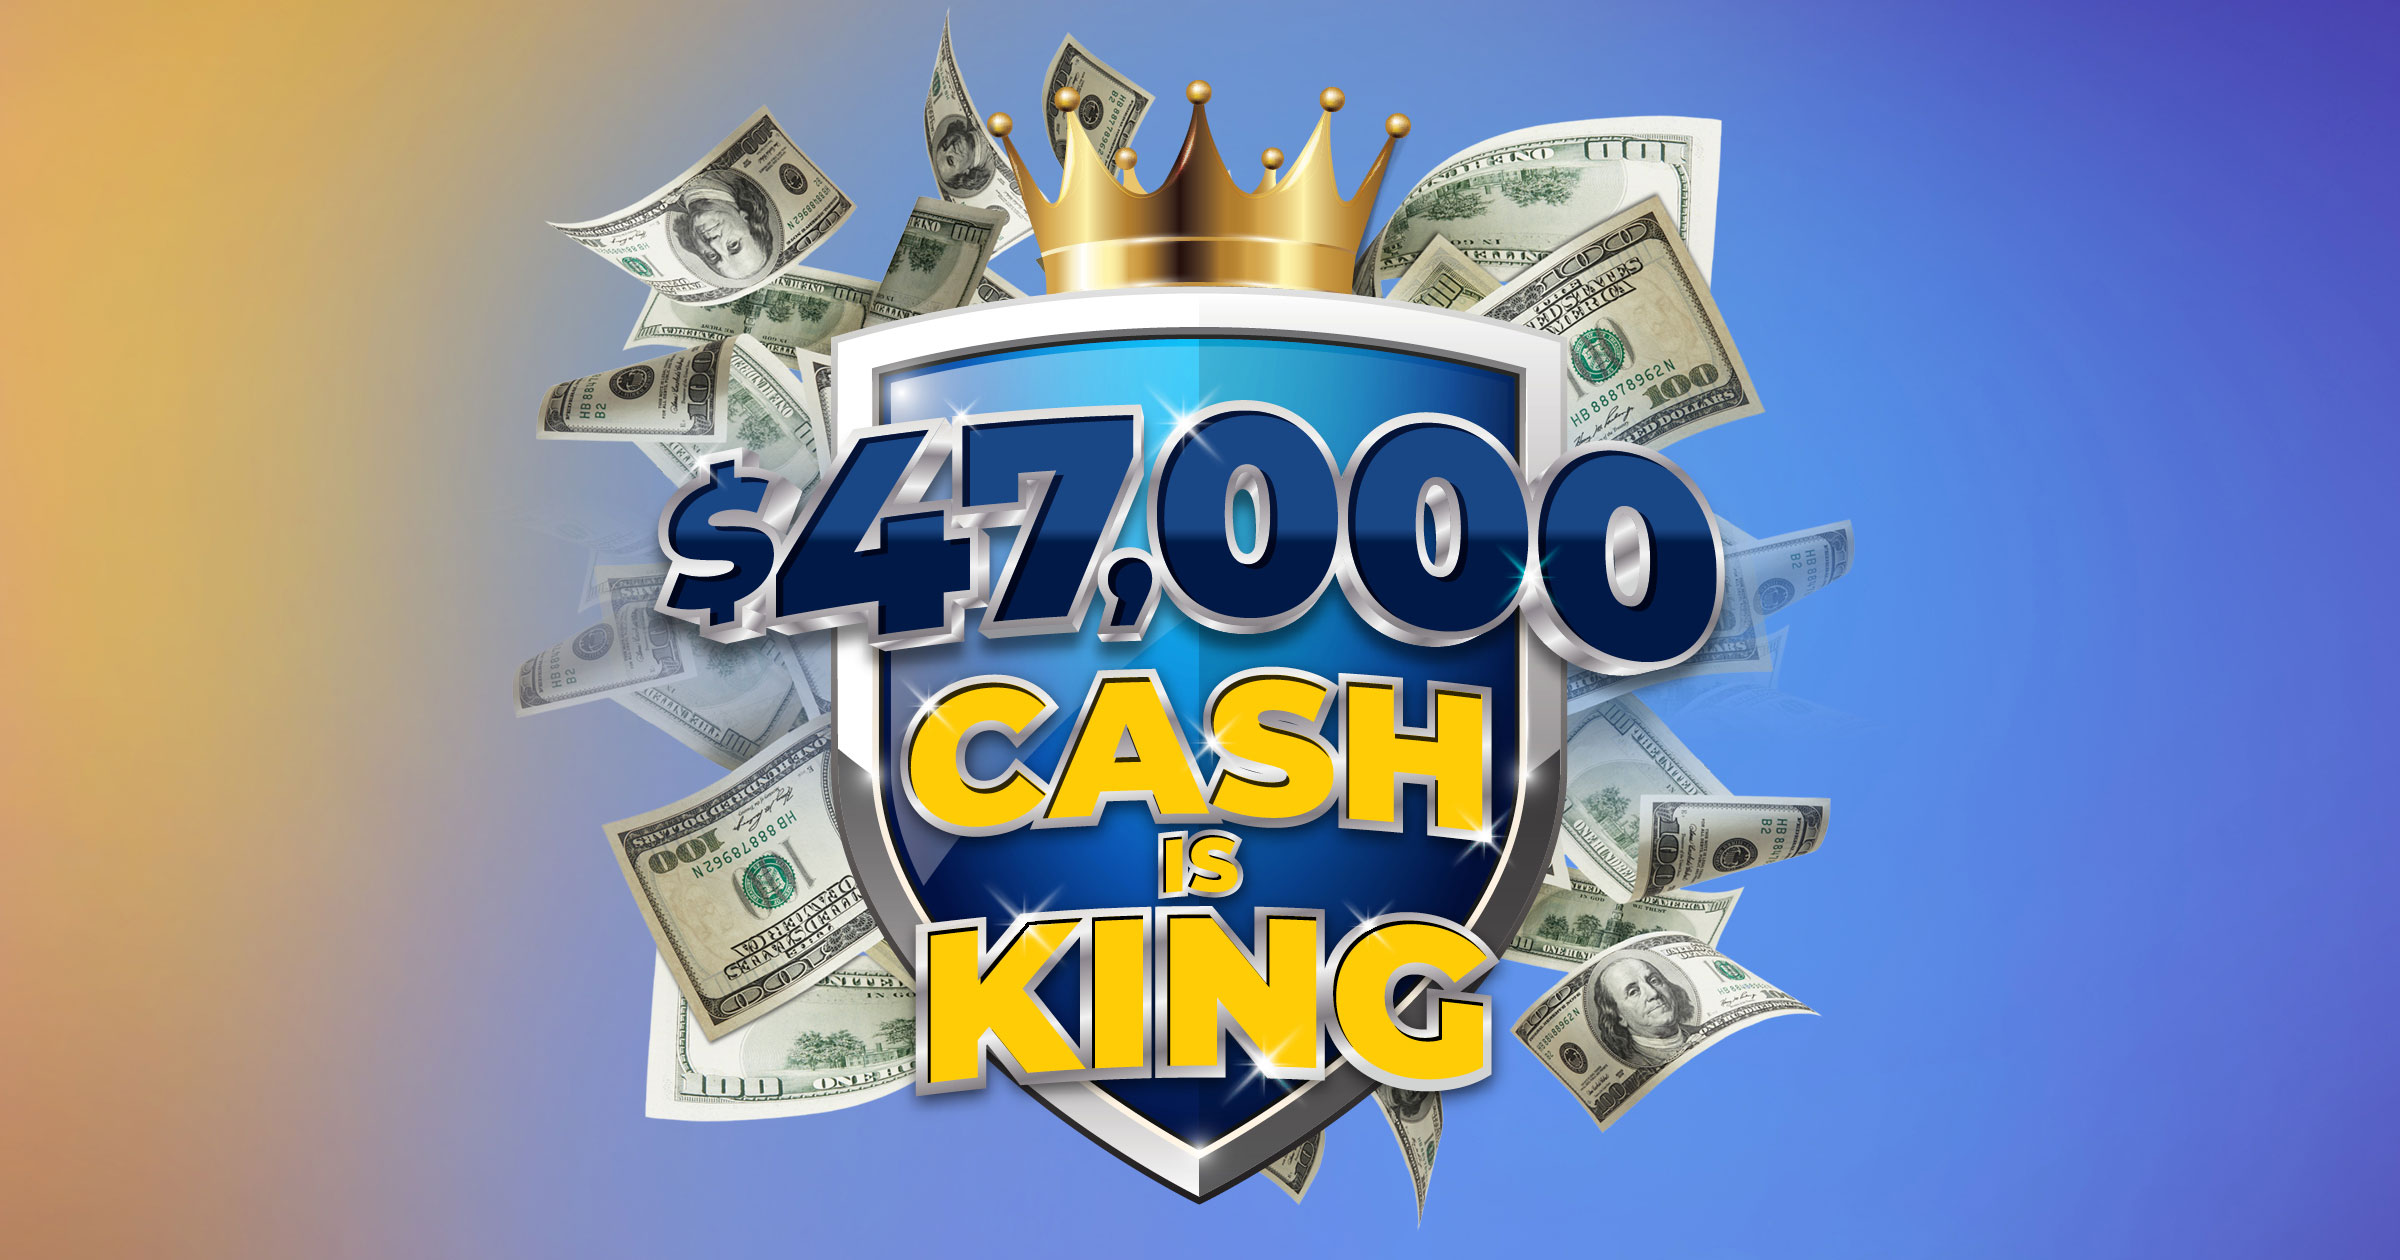 $47,000 Cash is King